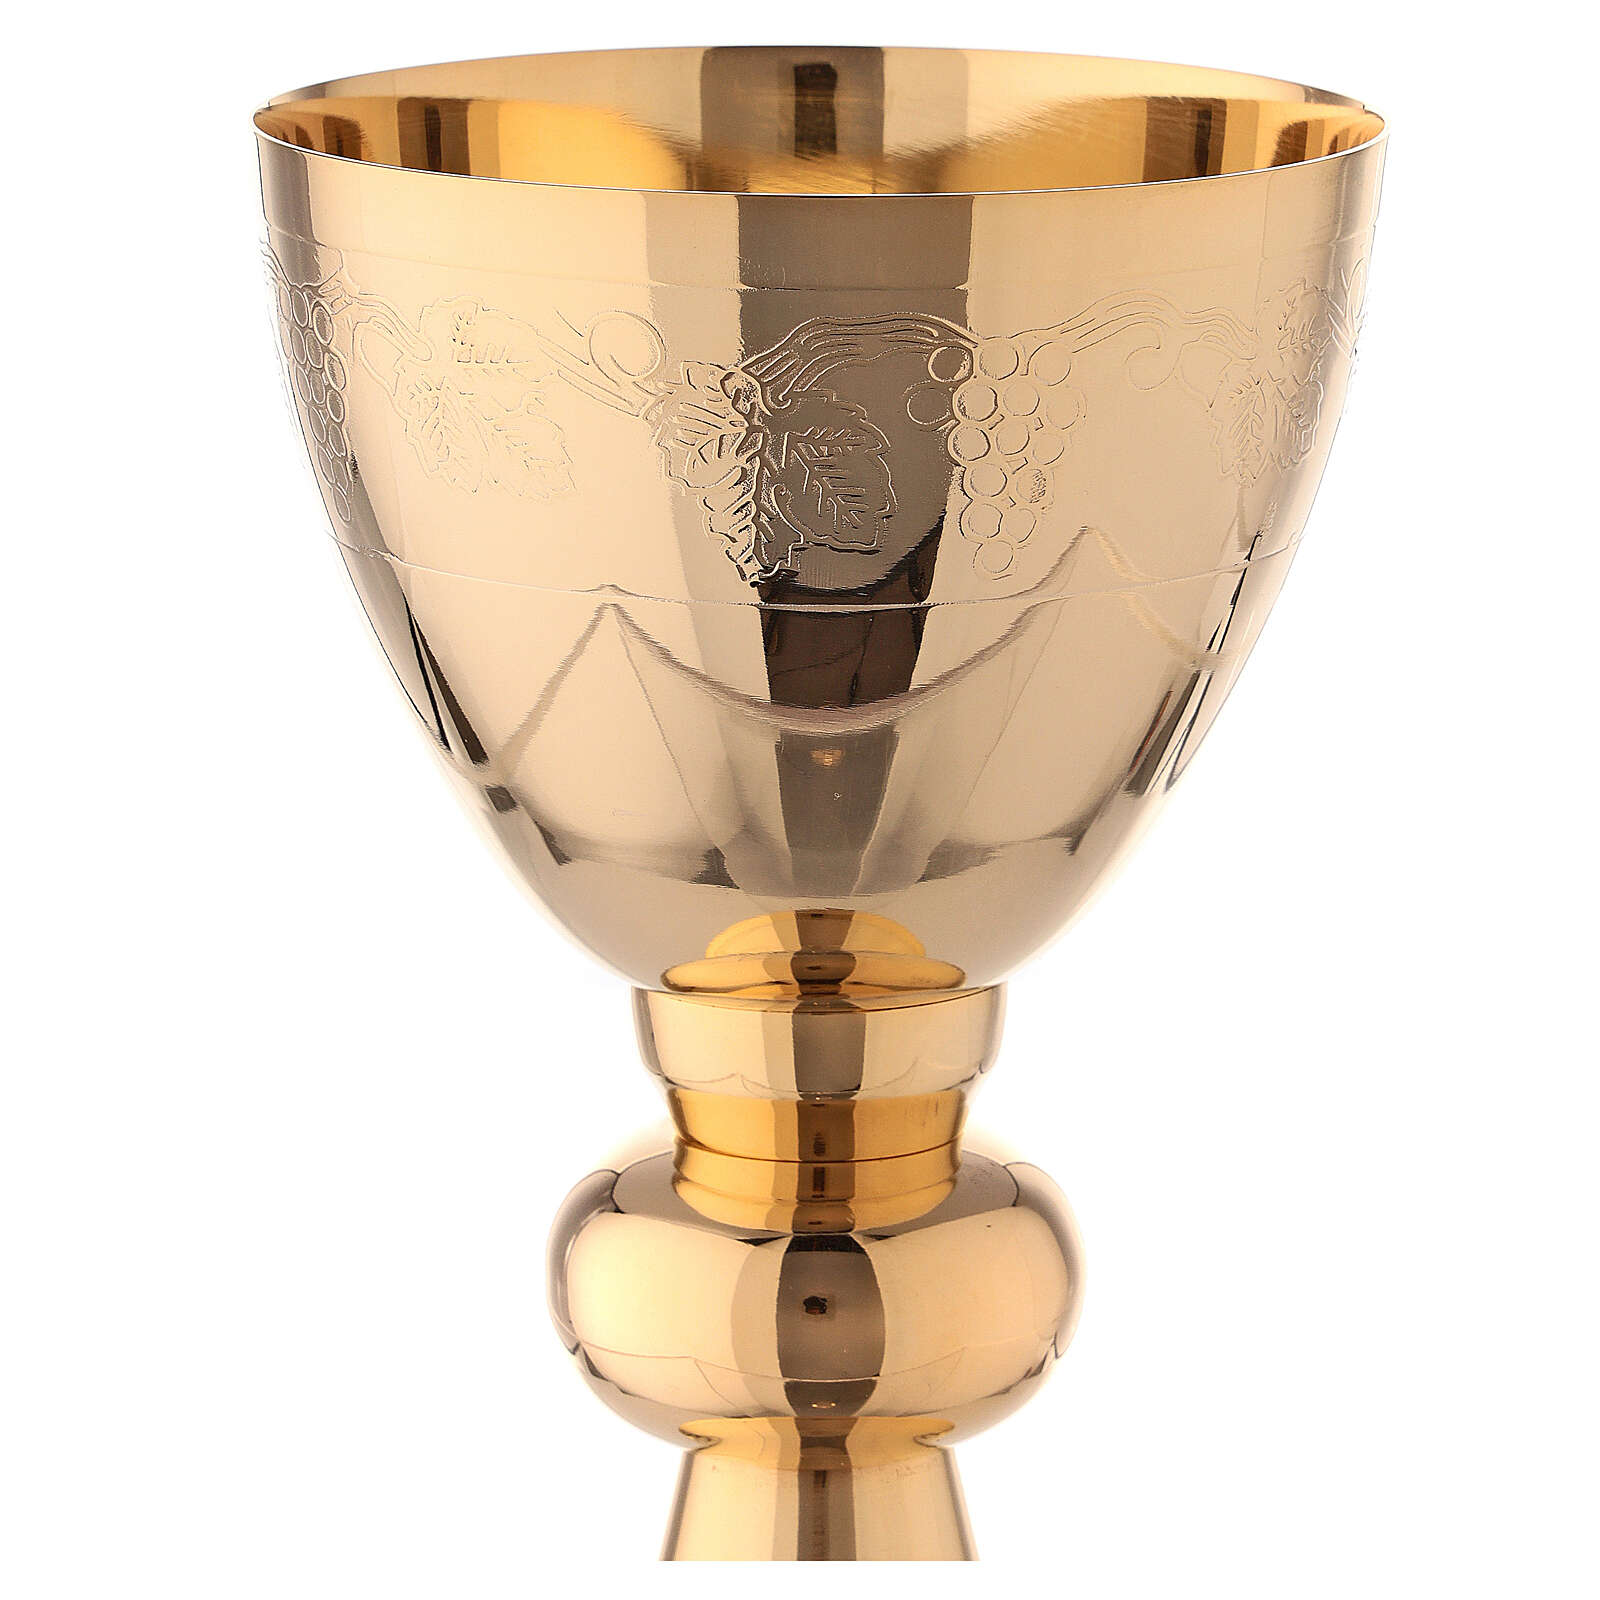 Gold plated brass chalice and paten with grape branches decoration 7 in 4